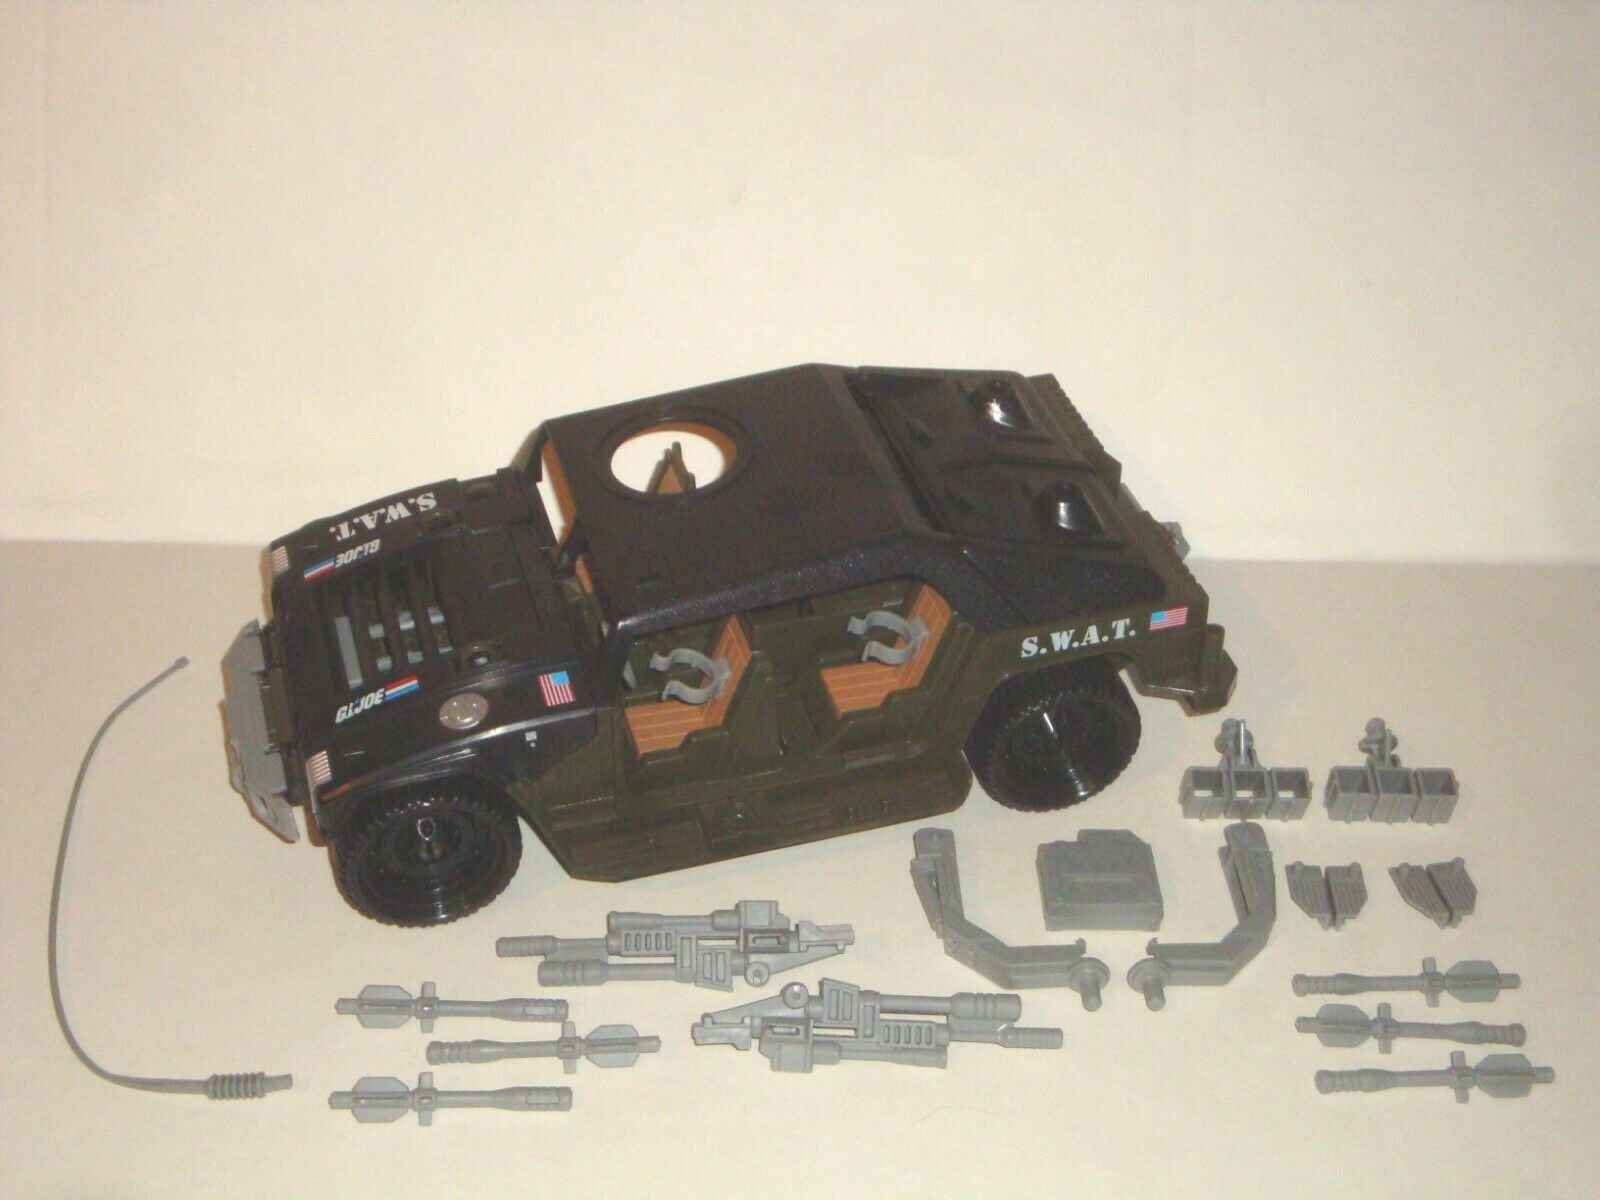 2008 S.W.A.T. R.T.V. - JOECON Hammer - 100% Complete GIJOE Vehicle